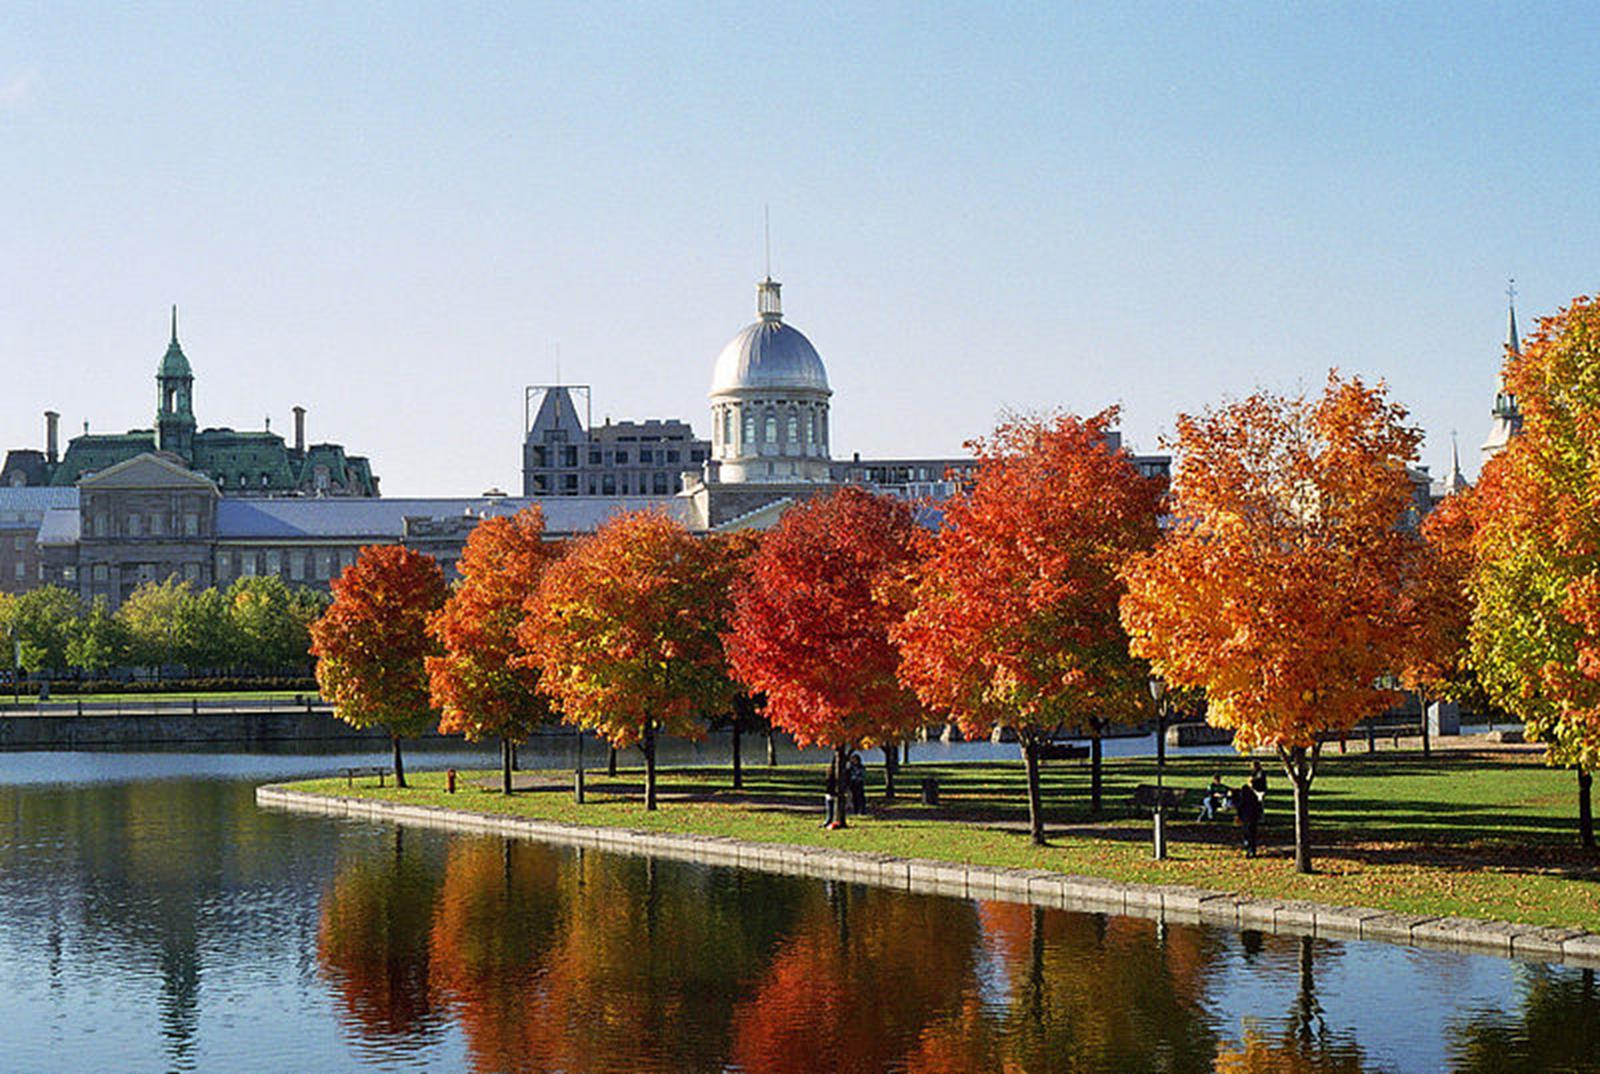 Discover Picturesque Montreal with Your Religious Travel Group